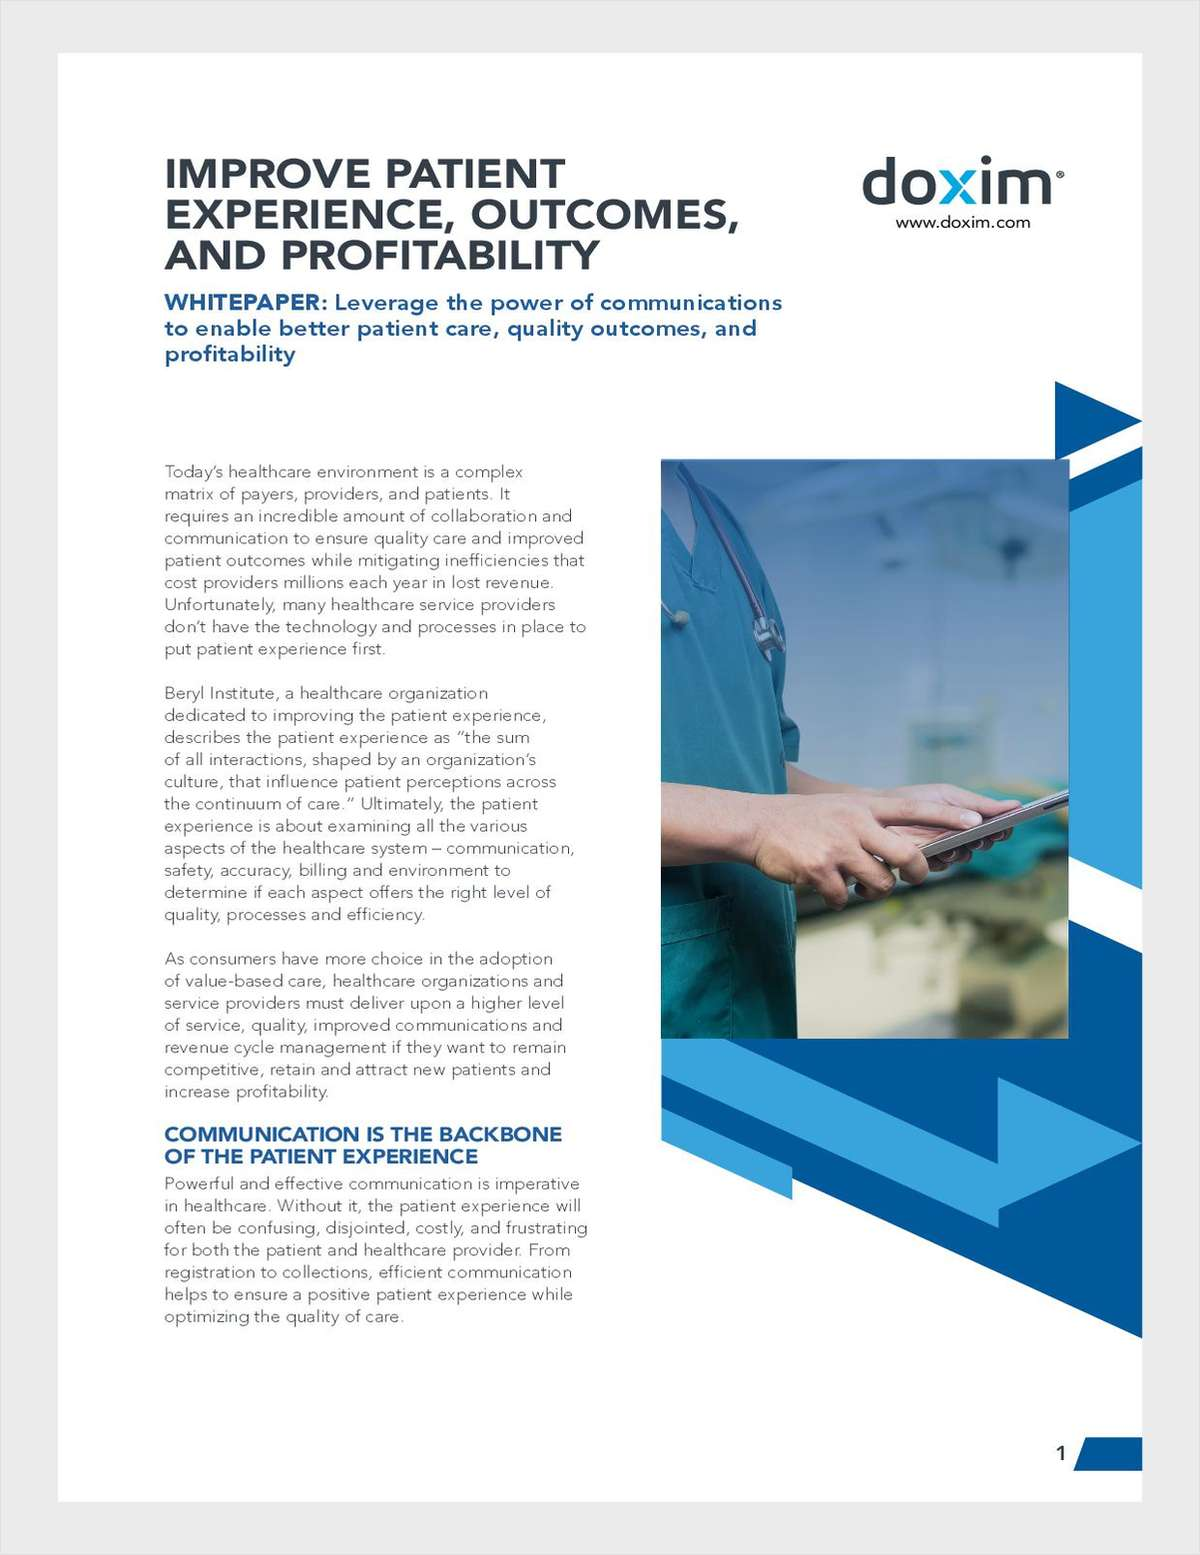 Improve Patient Experience and Outcomes through Communications